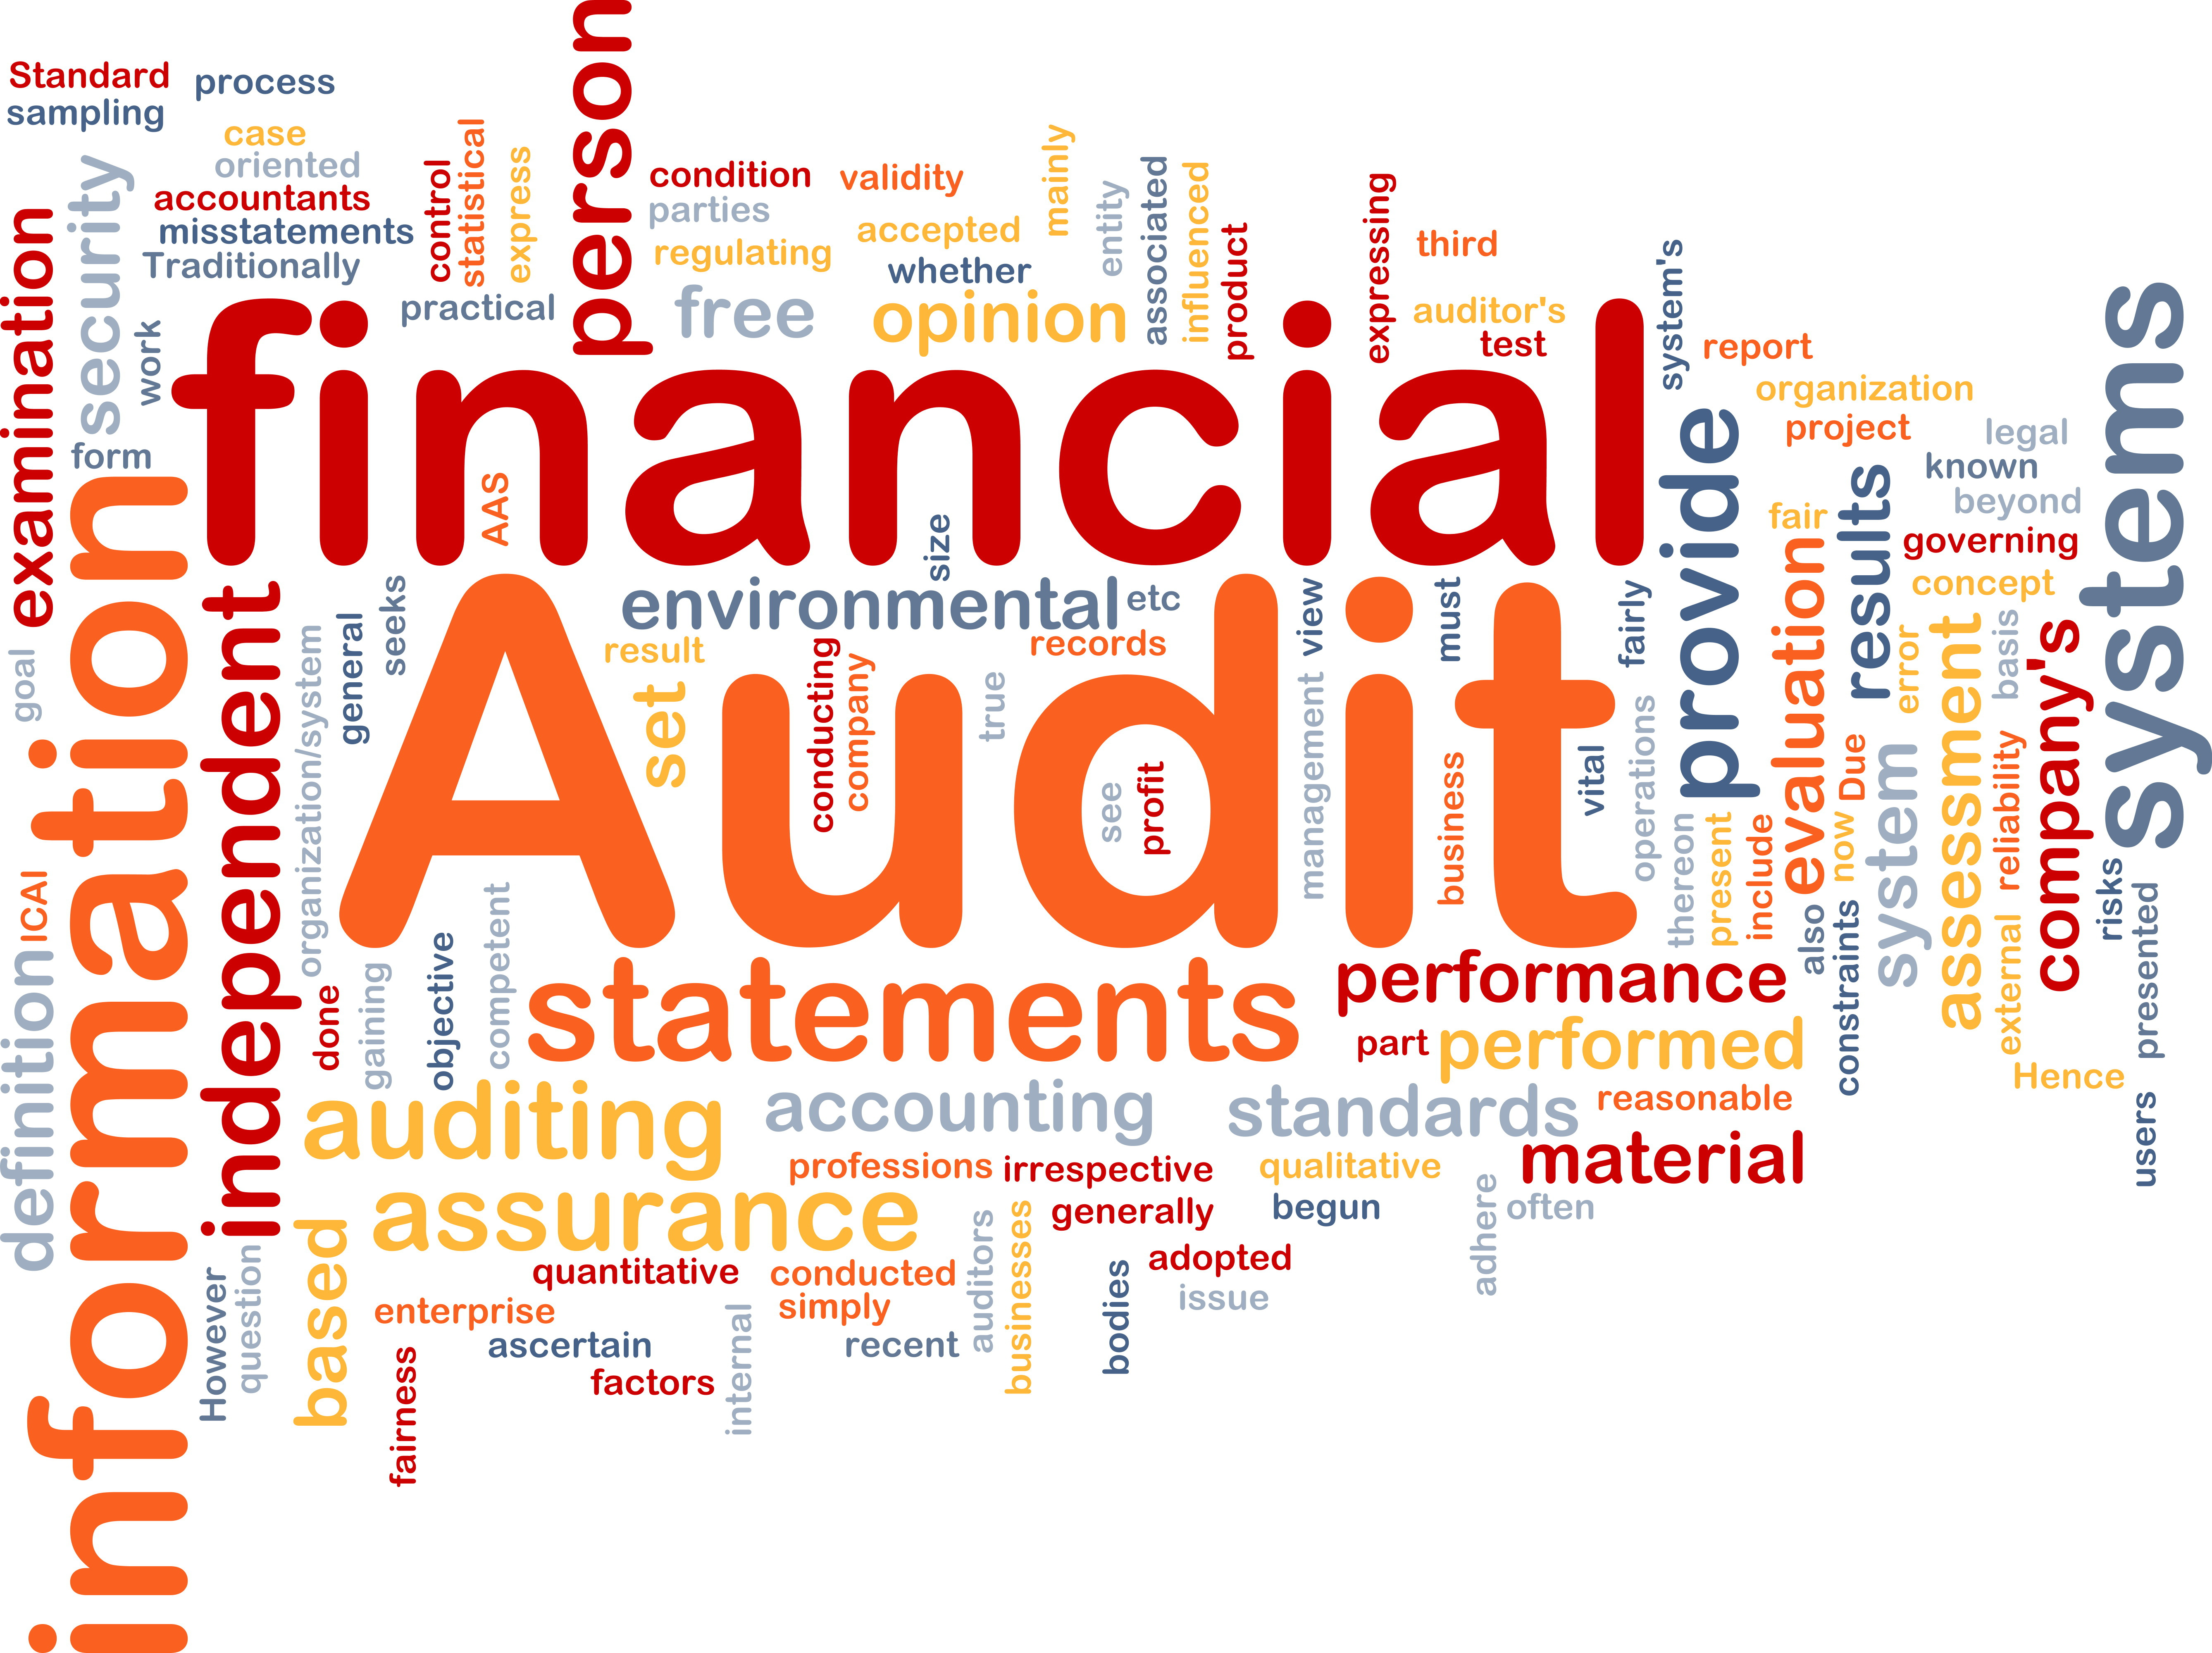 auditing business assurance Kreston offers partner-led audit and assurance services during an audit, we aim to gain a real understanding of your business and the quality and effectiveness.